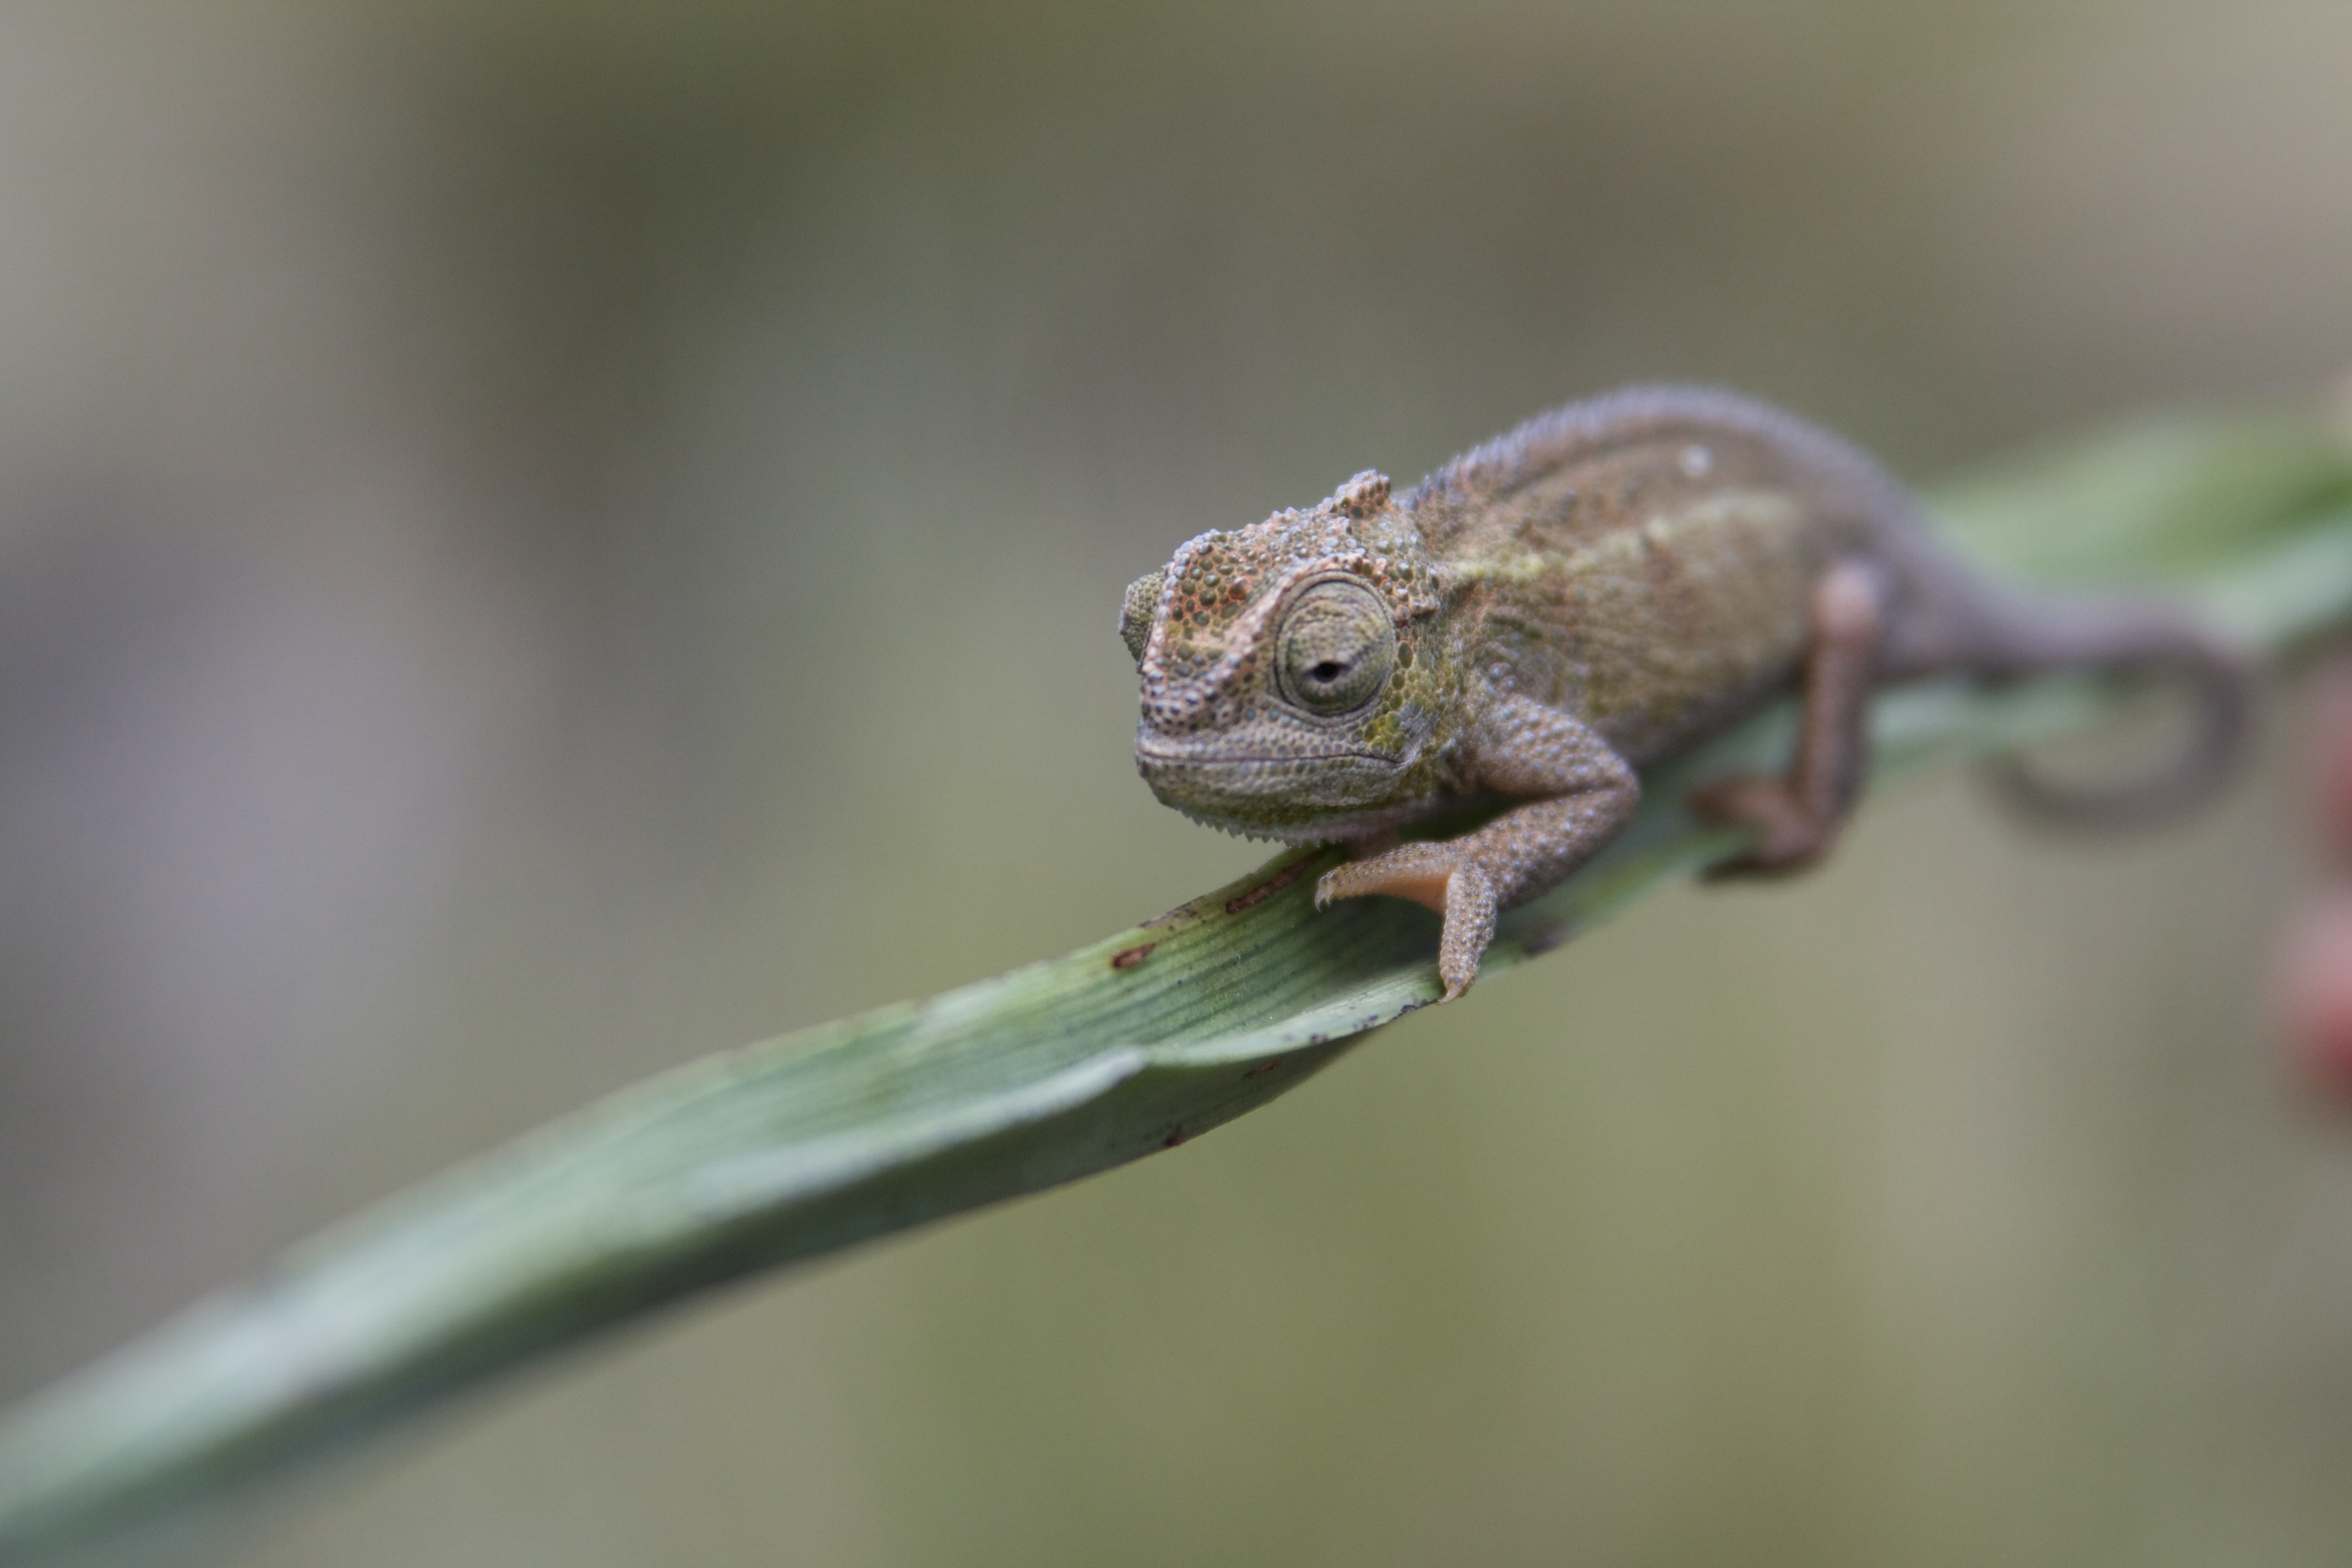 brown cameleon on green leaf in selective focus photography